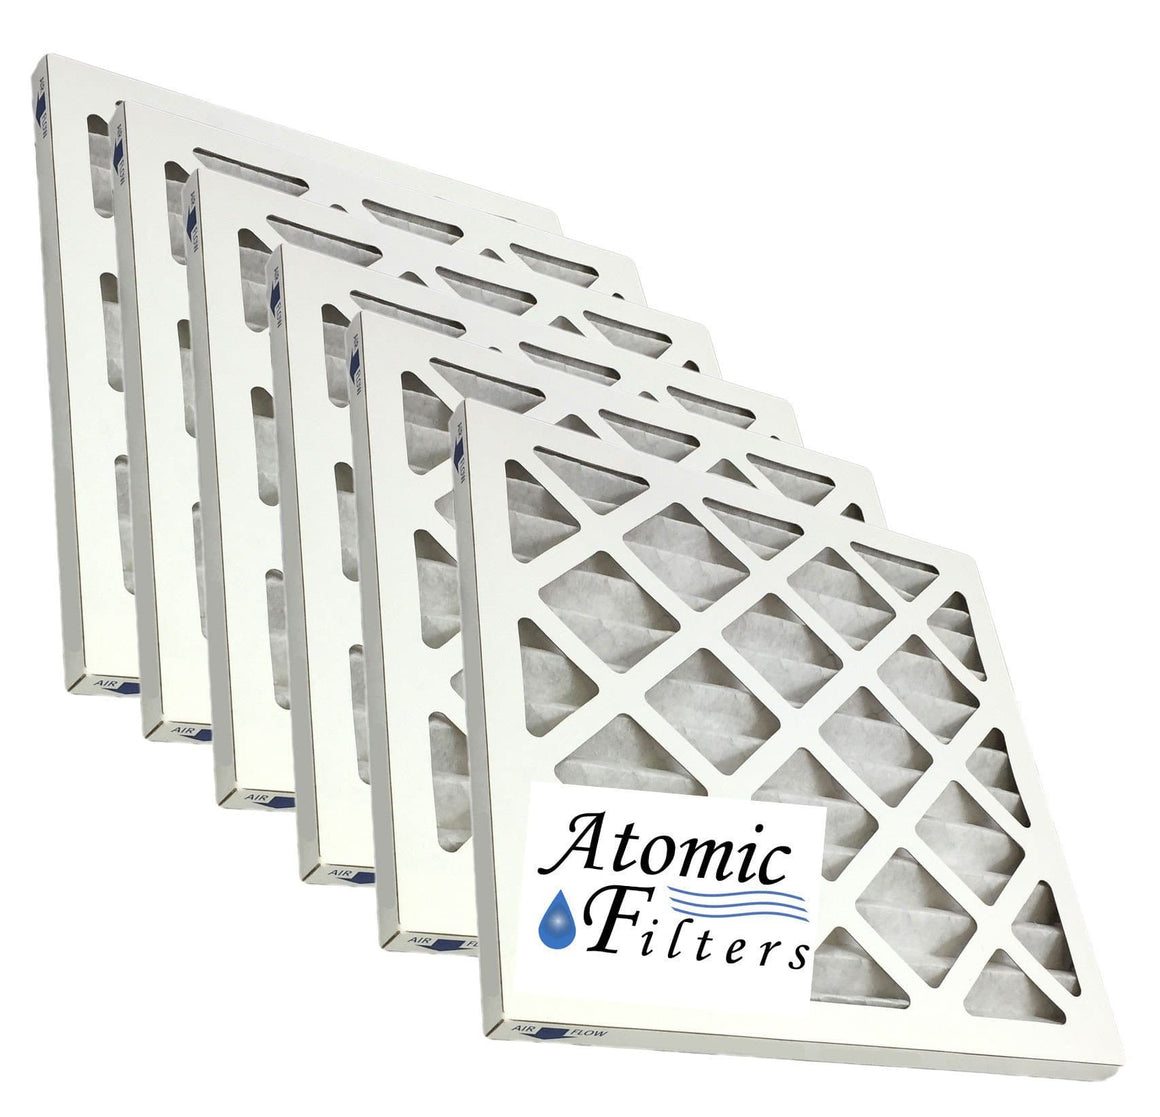 18x18x1 Merv 13 Pleated AC Furnace Filter - Case of 6 by Atomic Filters